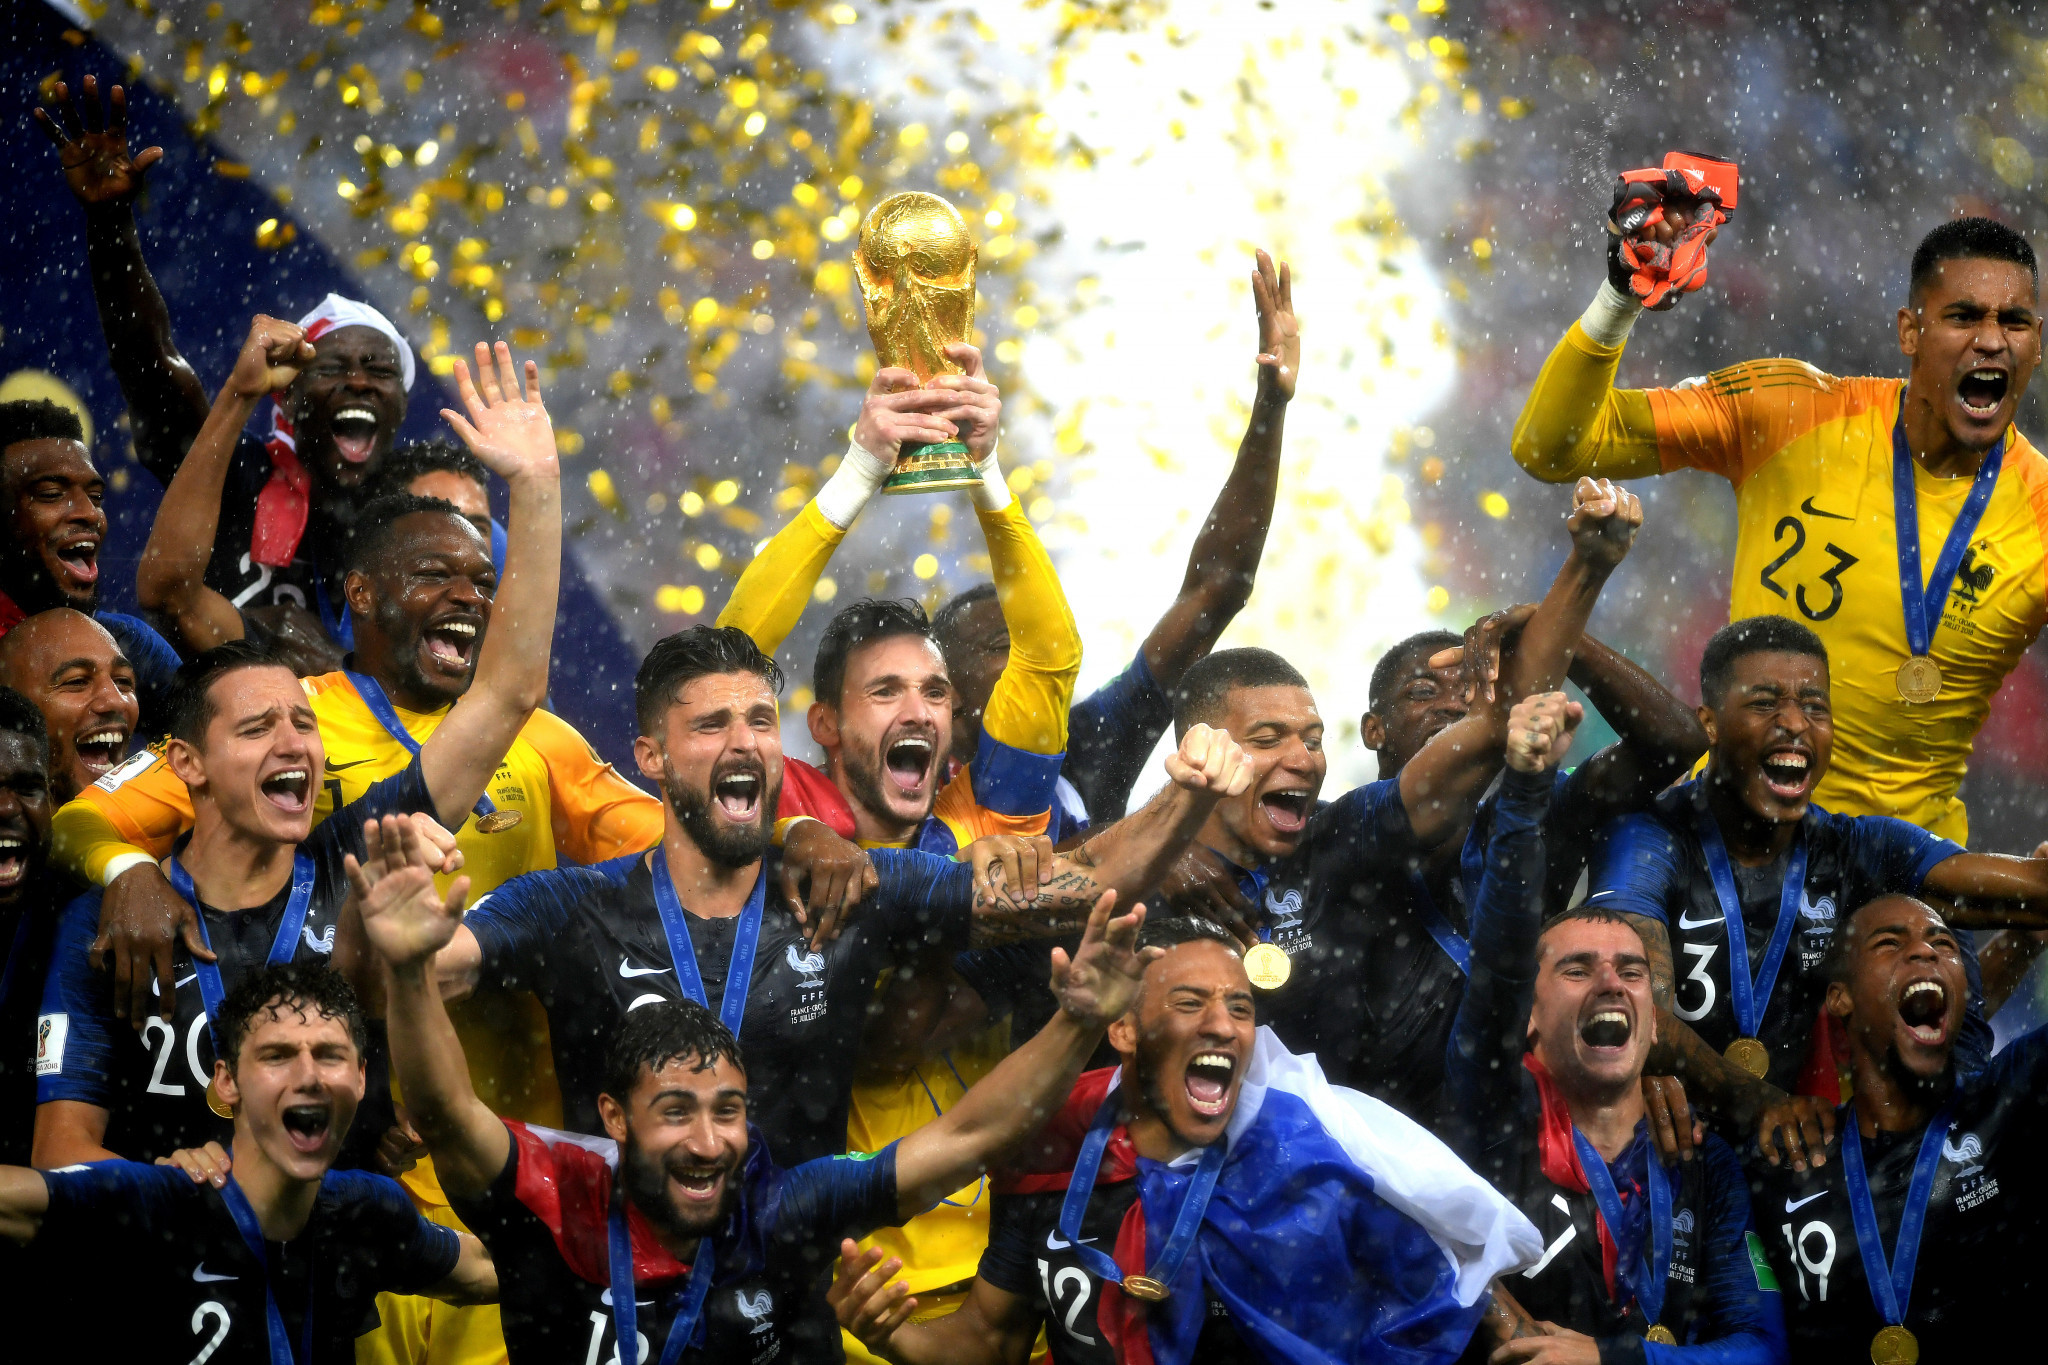 The 2018 FIFA World Cup was a success and set the scene for future sporting events in Russia ©Getty Images